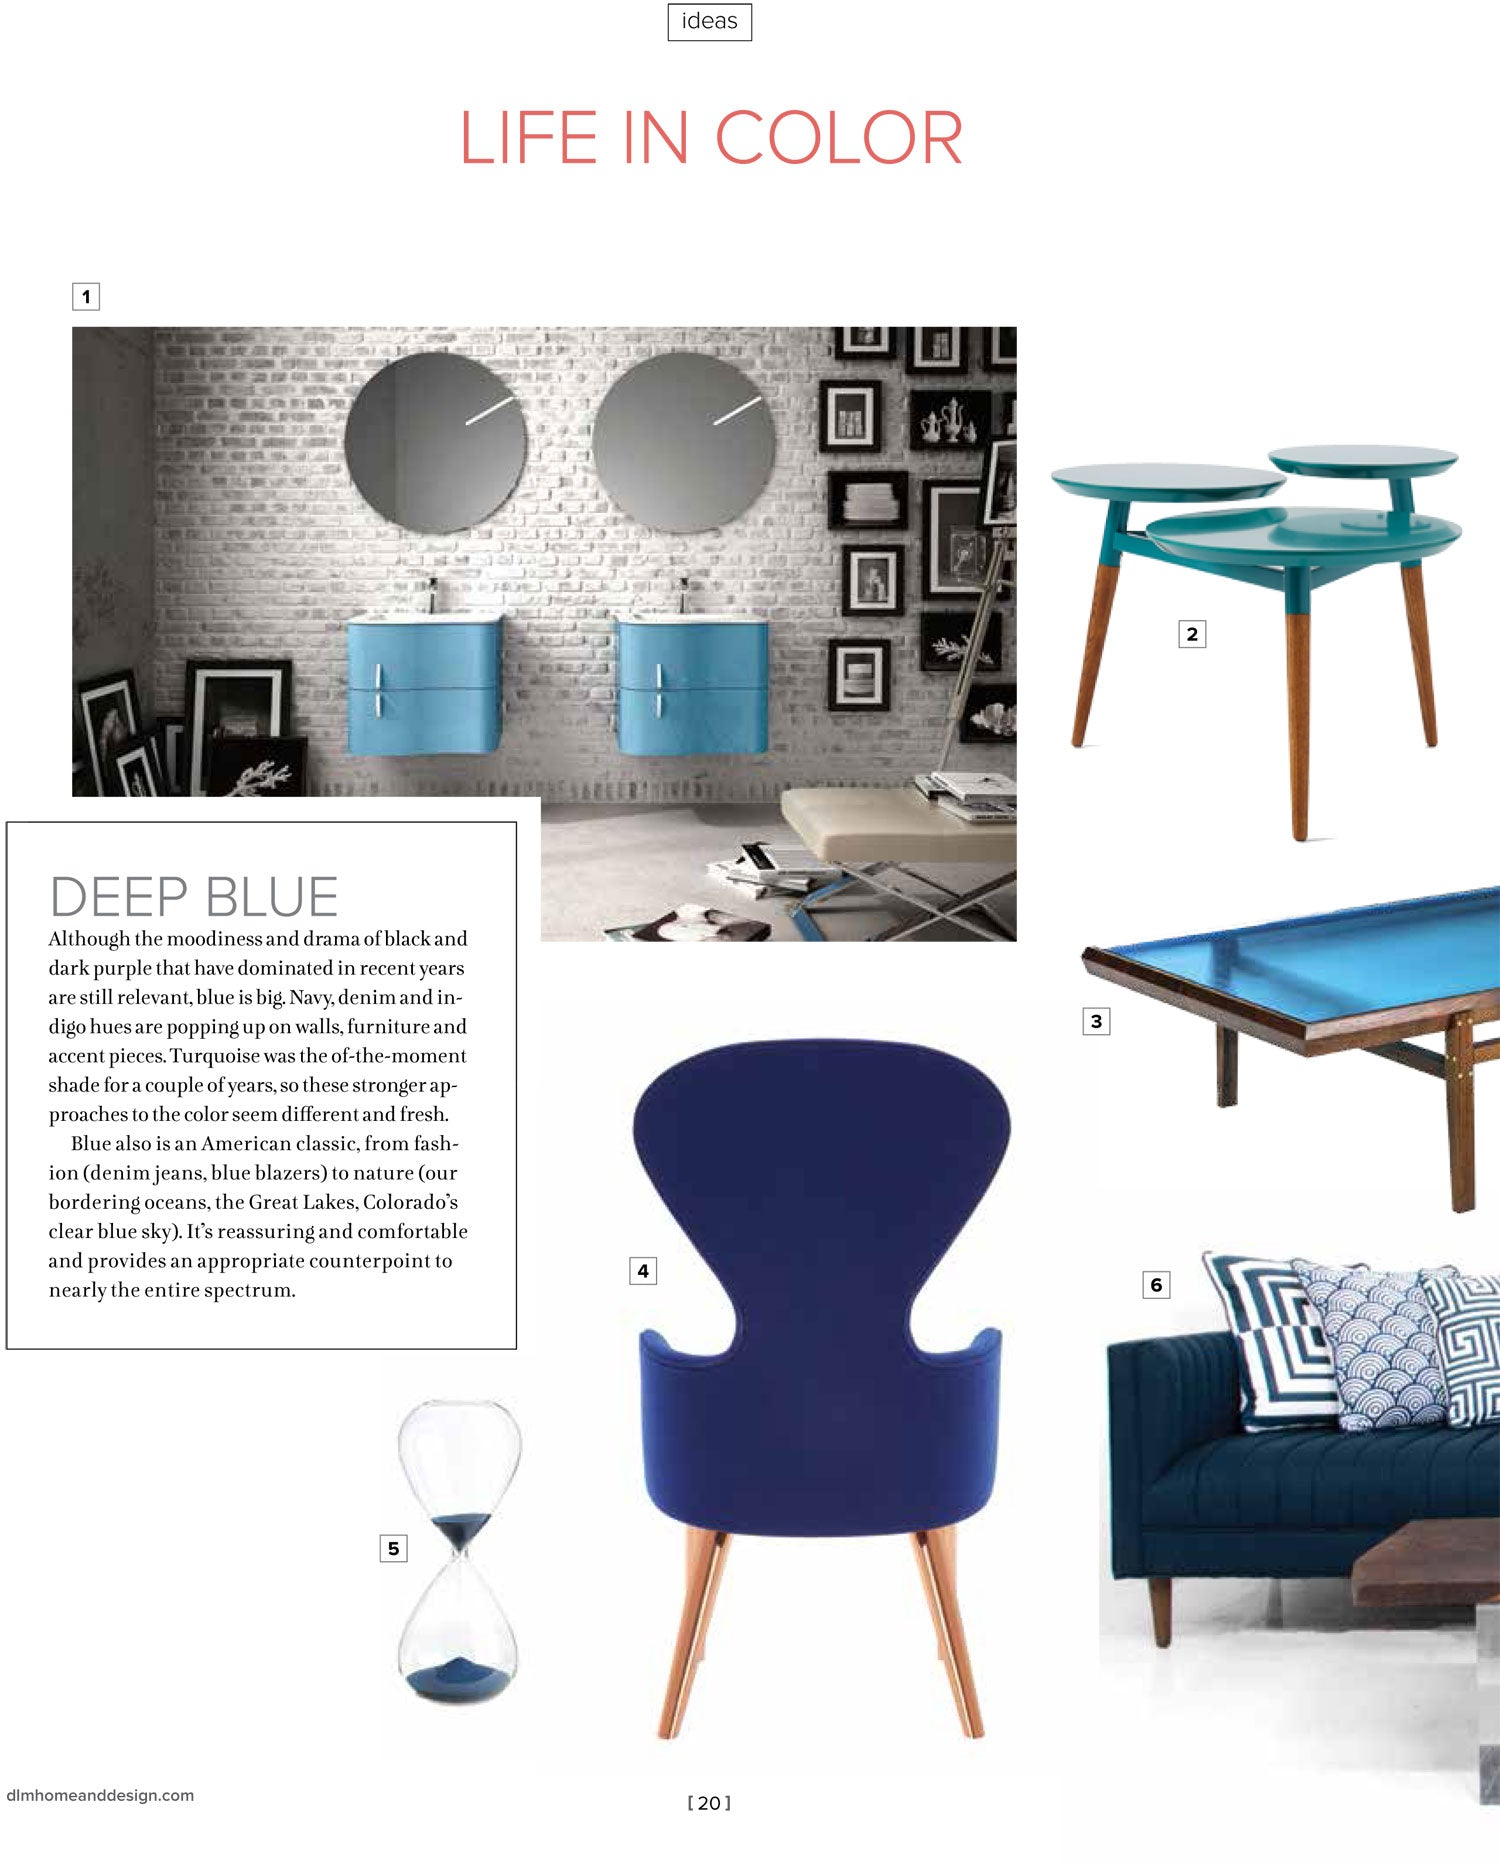 Magazine page showing modern-style furniture, accent pieces in various tones of blue, 'Life in Color' printed in red at top